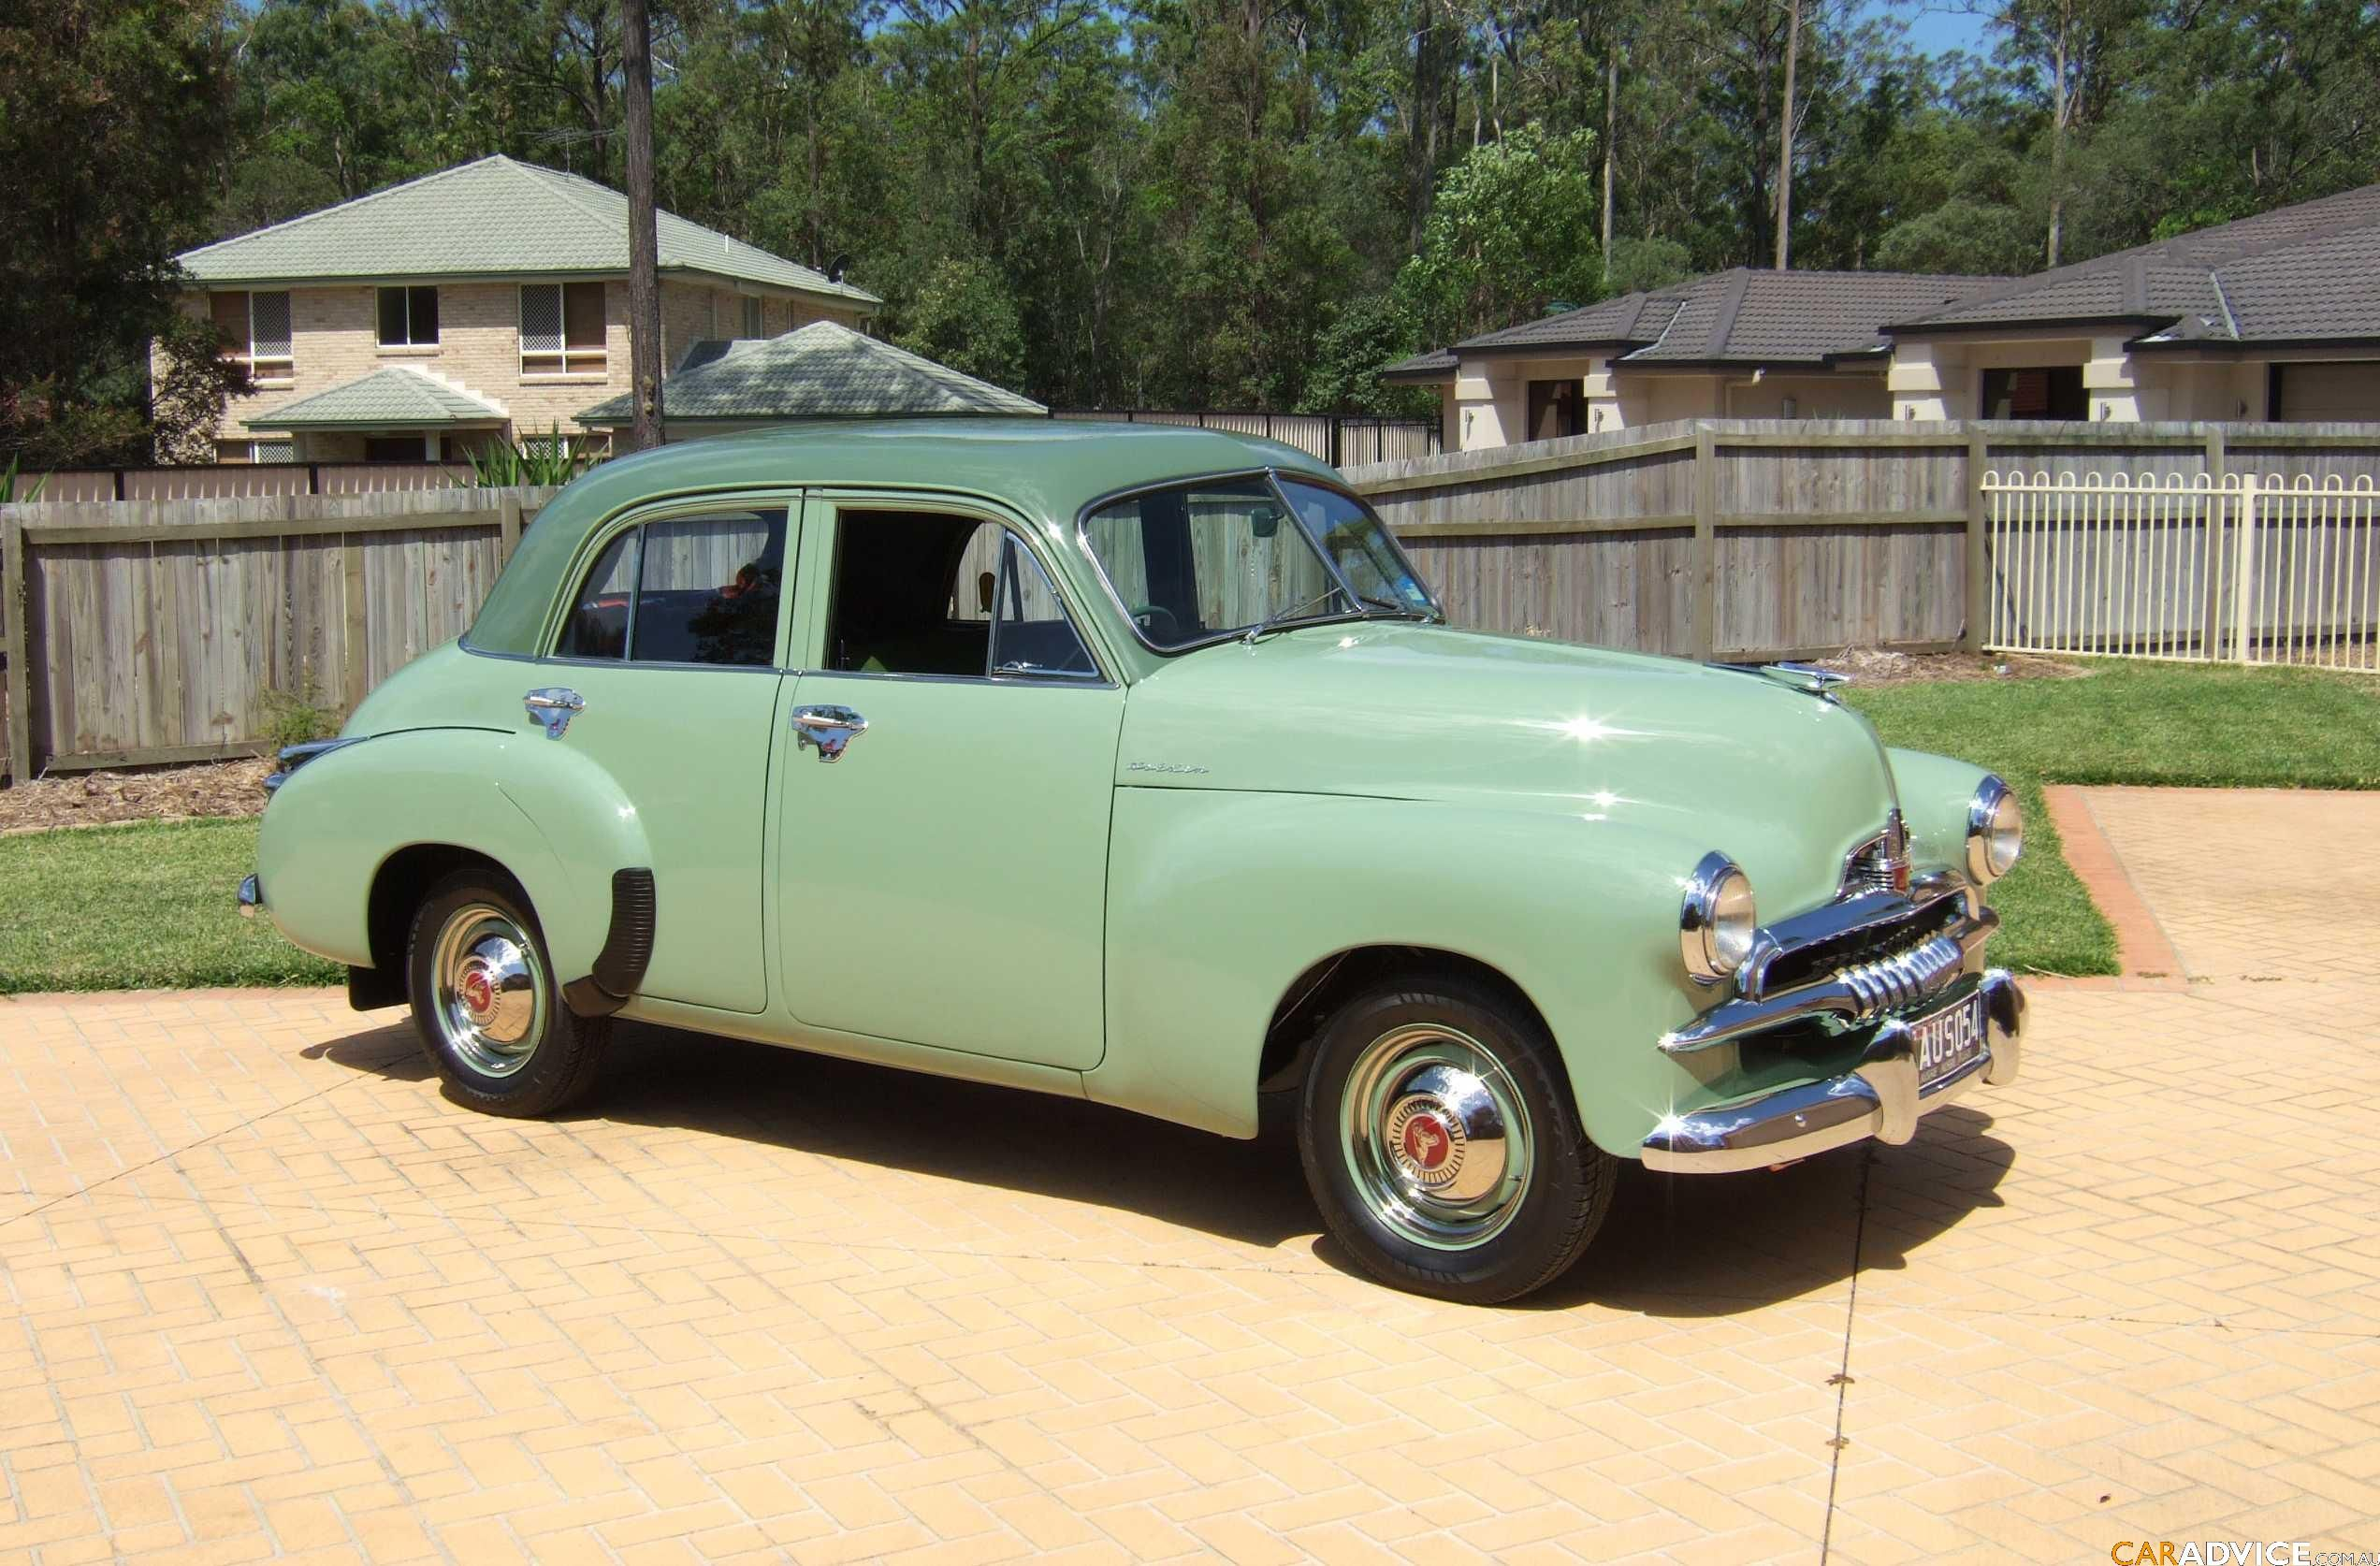 Charming Vintage Holden Cars Ideas - Classic Cars Ideas - boiq.info